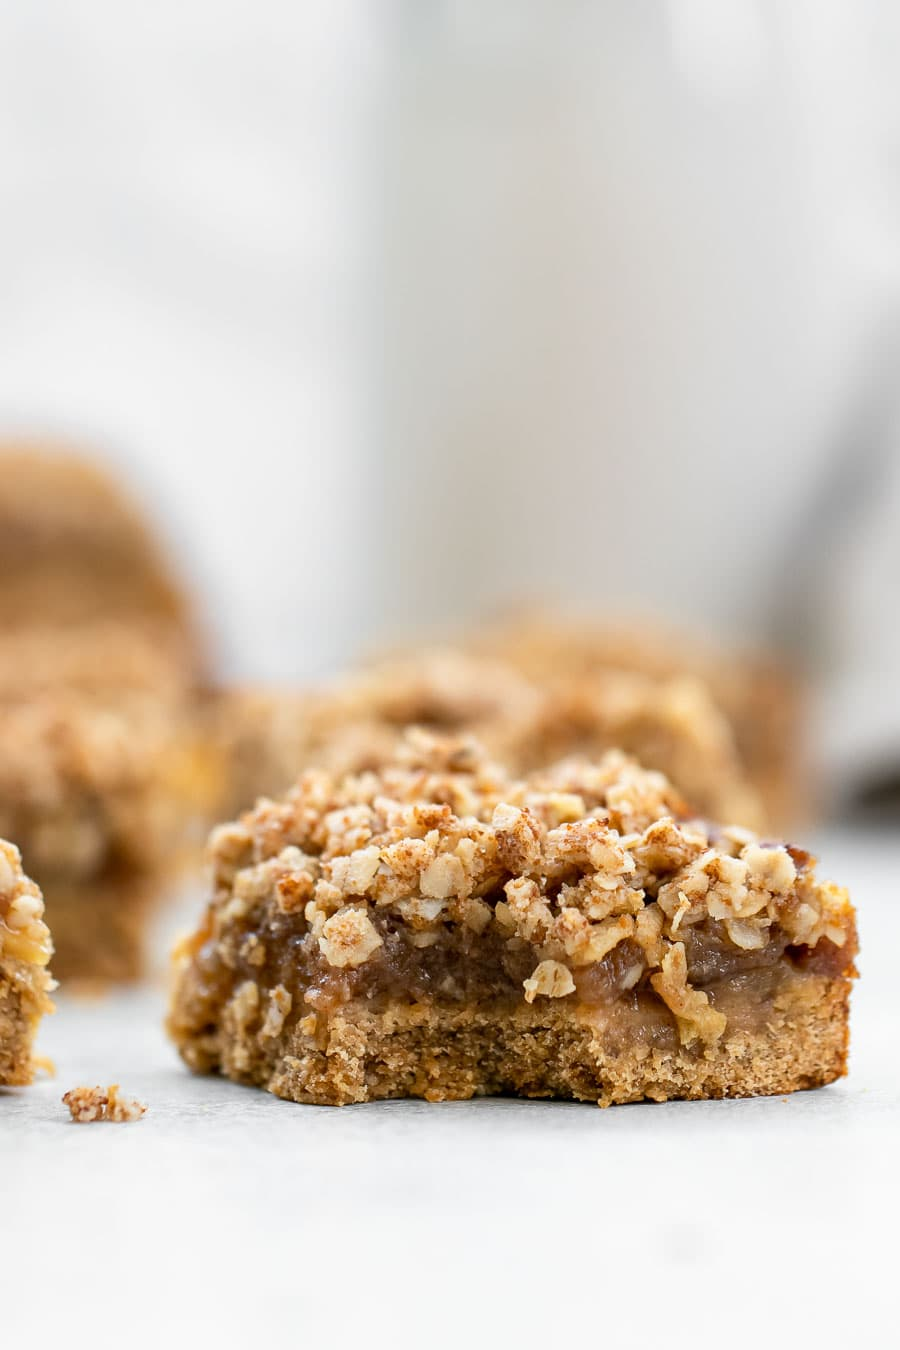 Apple pie bar with crumbles.